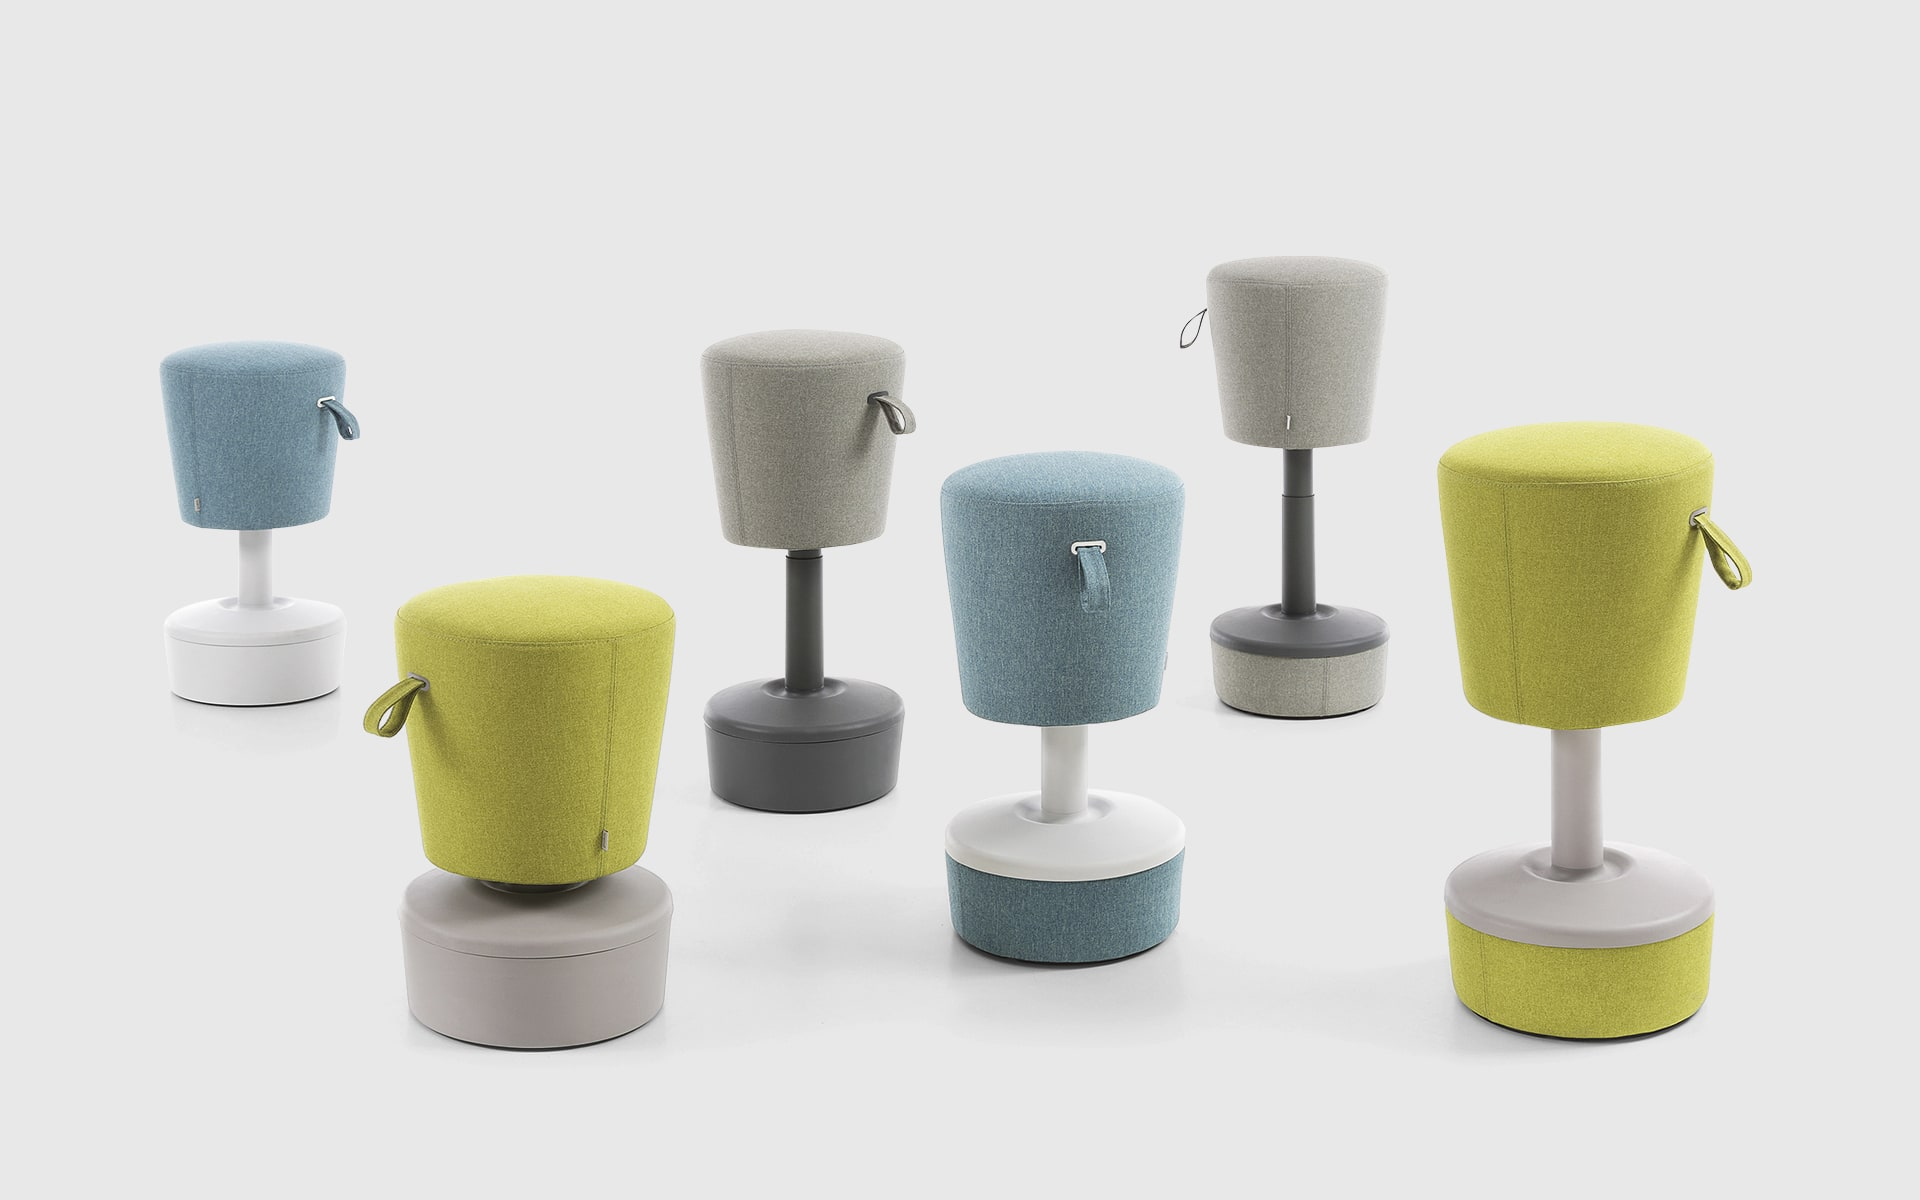 Six Profim Mickey stools by ITO Design in light blue, yellow green and grey